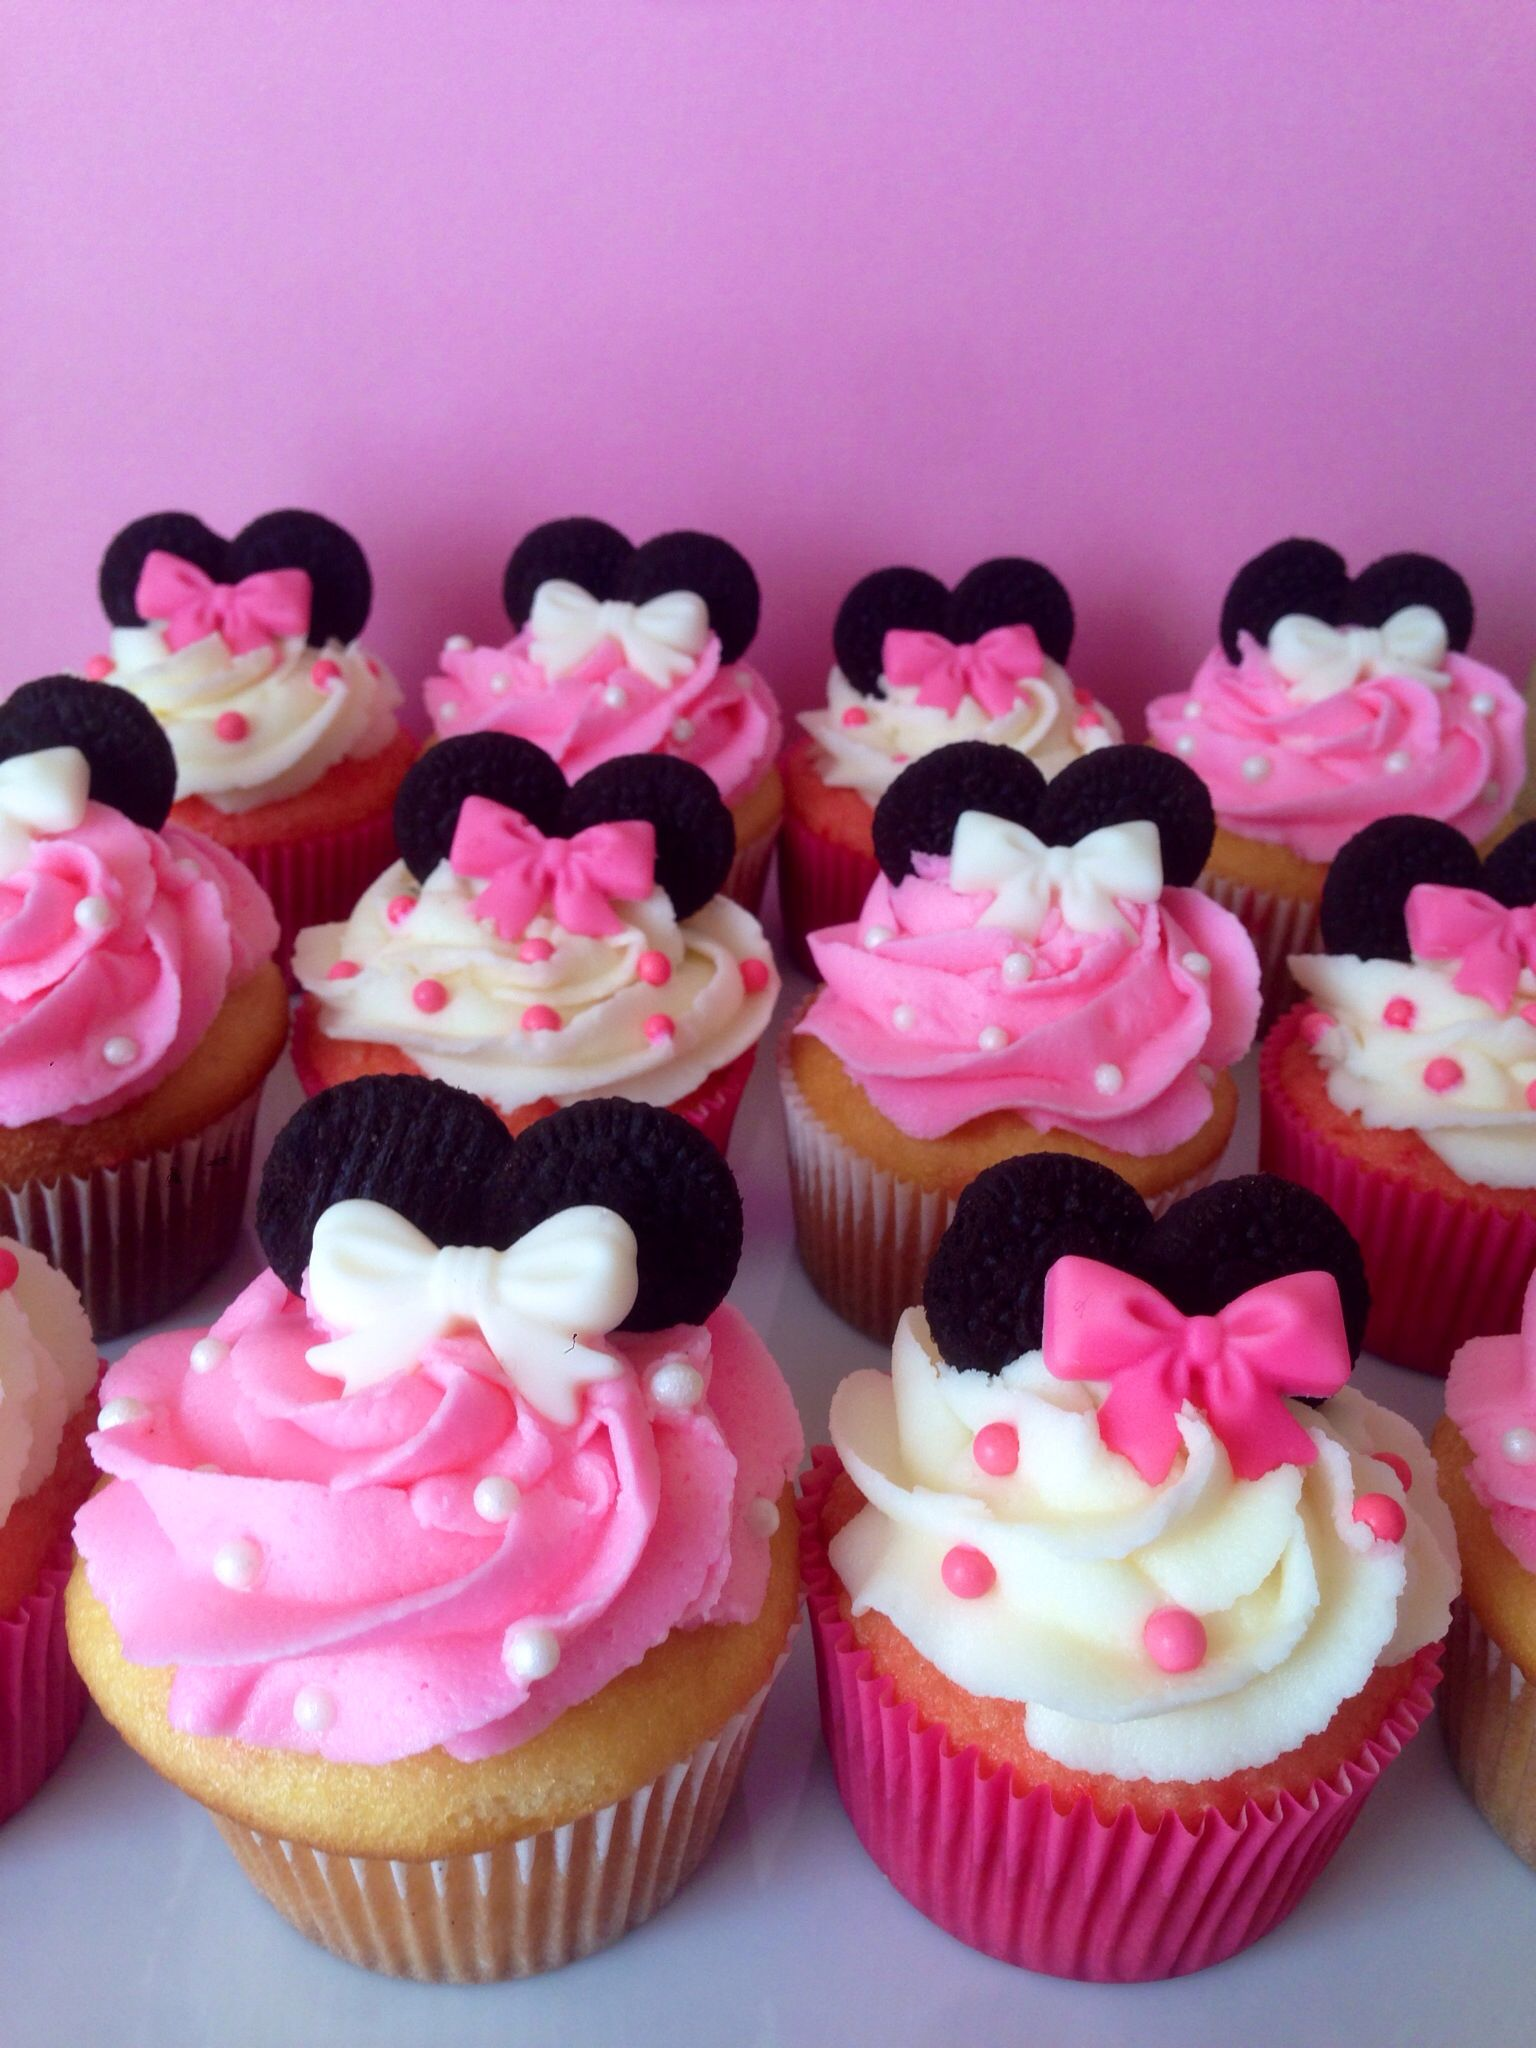 Hochzeit Cupcakes Minnie Mouse Cupcakes Birthday Party Ideas Minnie Maus Torte